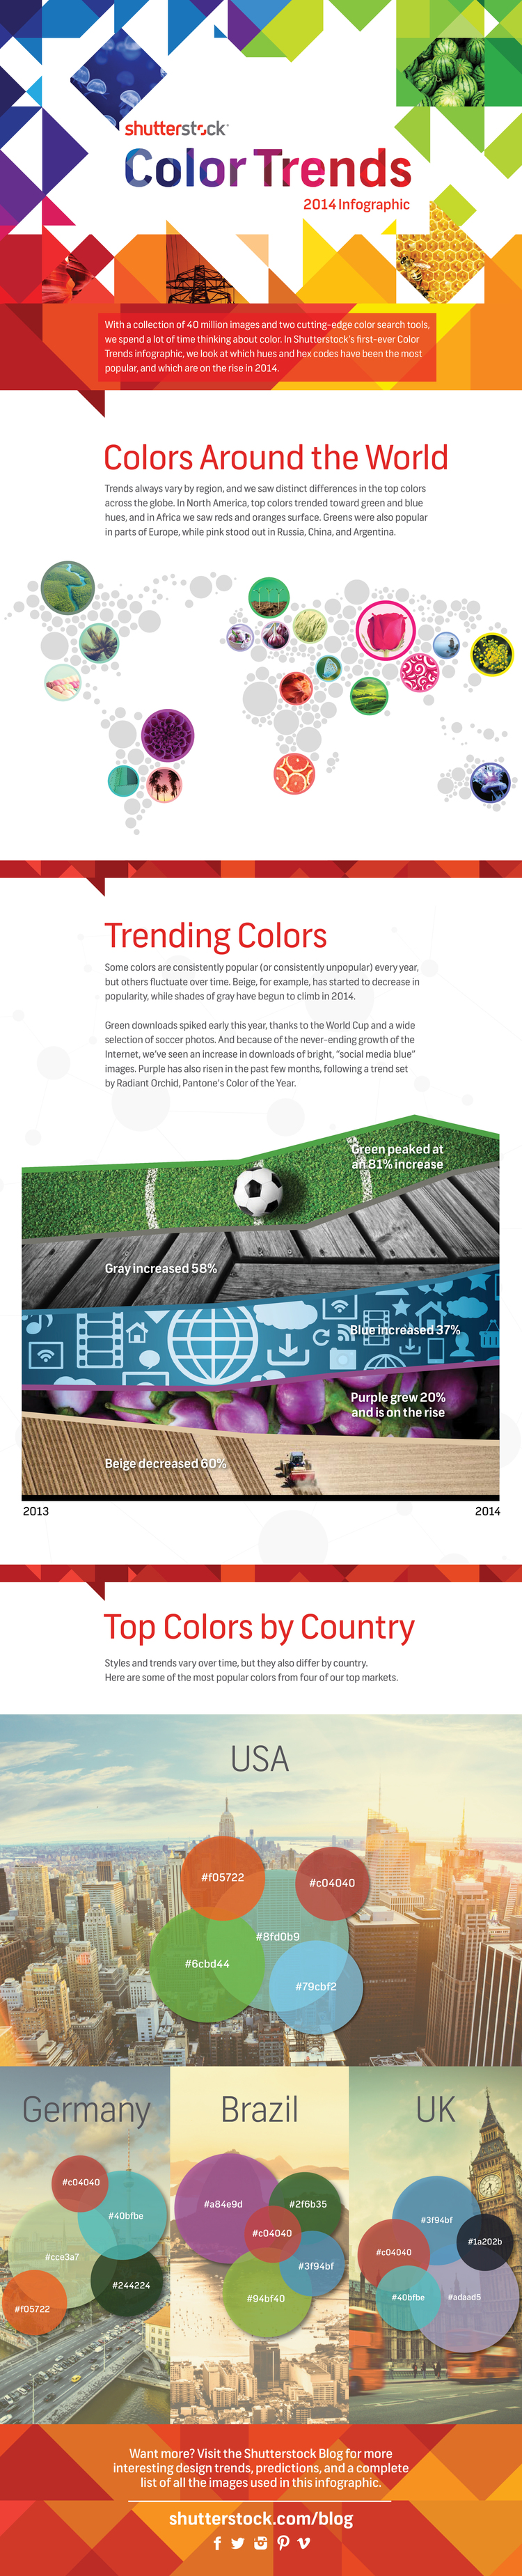 The Top Color Trends of 2014 infographic